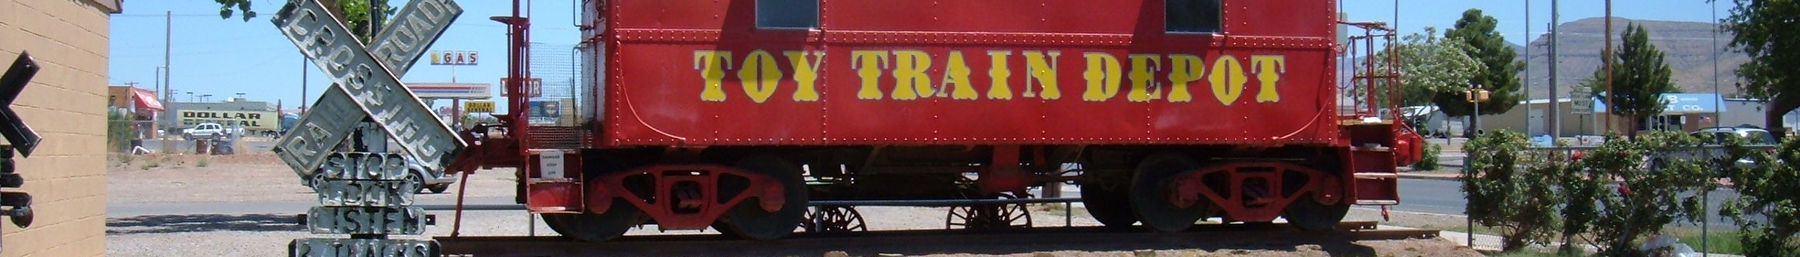 Alamogordo banner Toy train depot.jpg